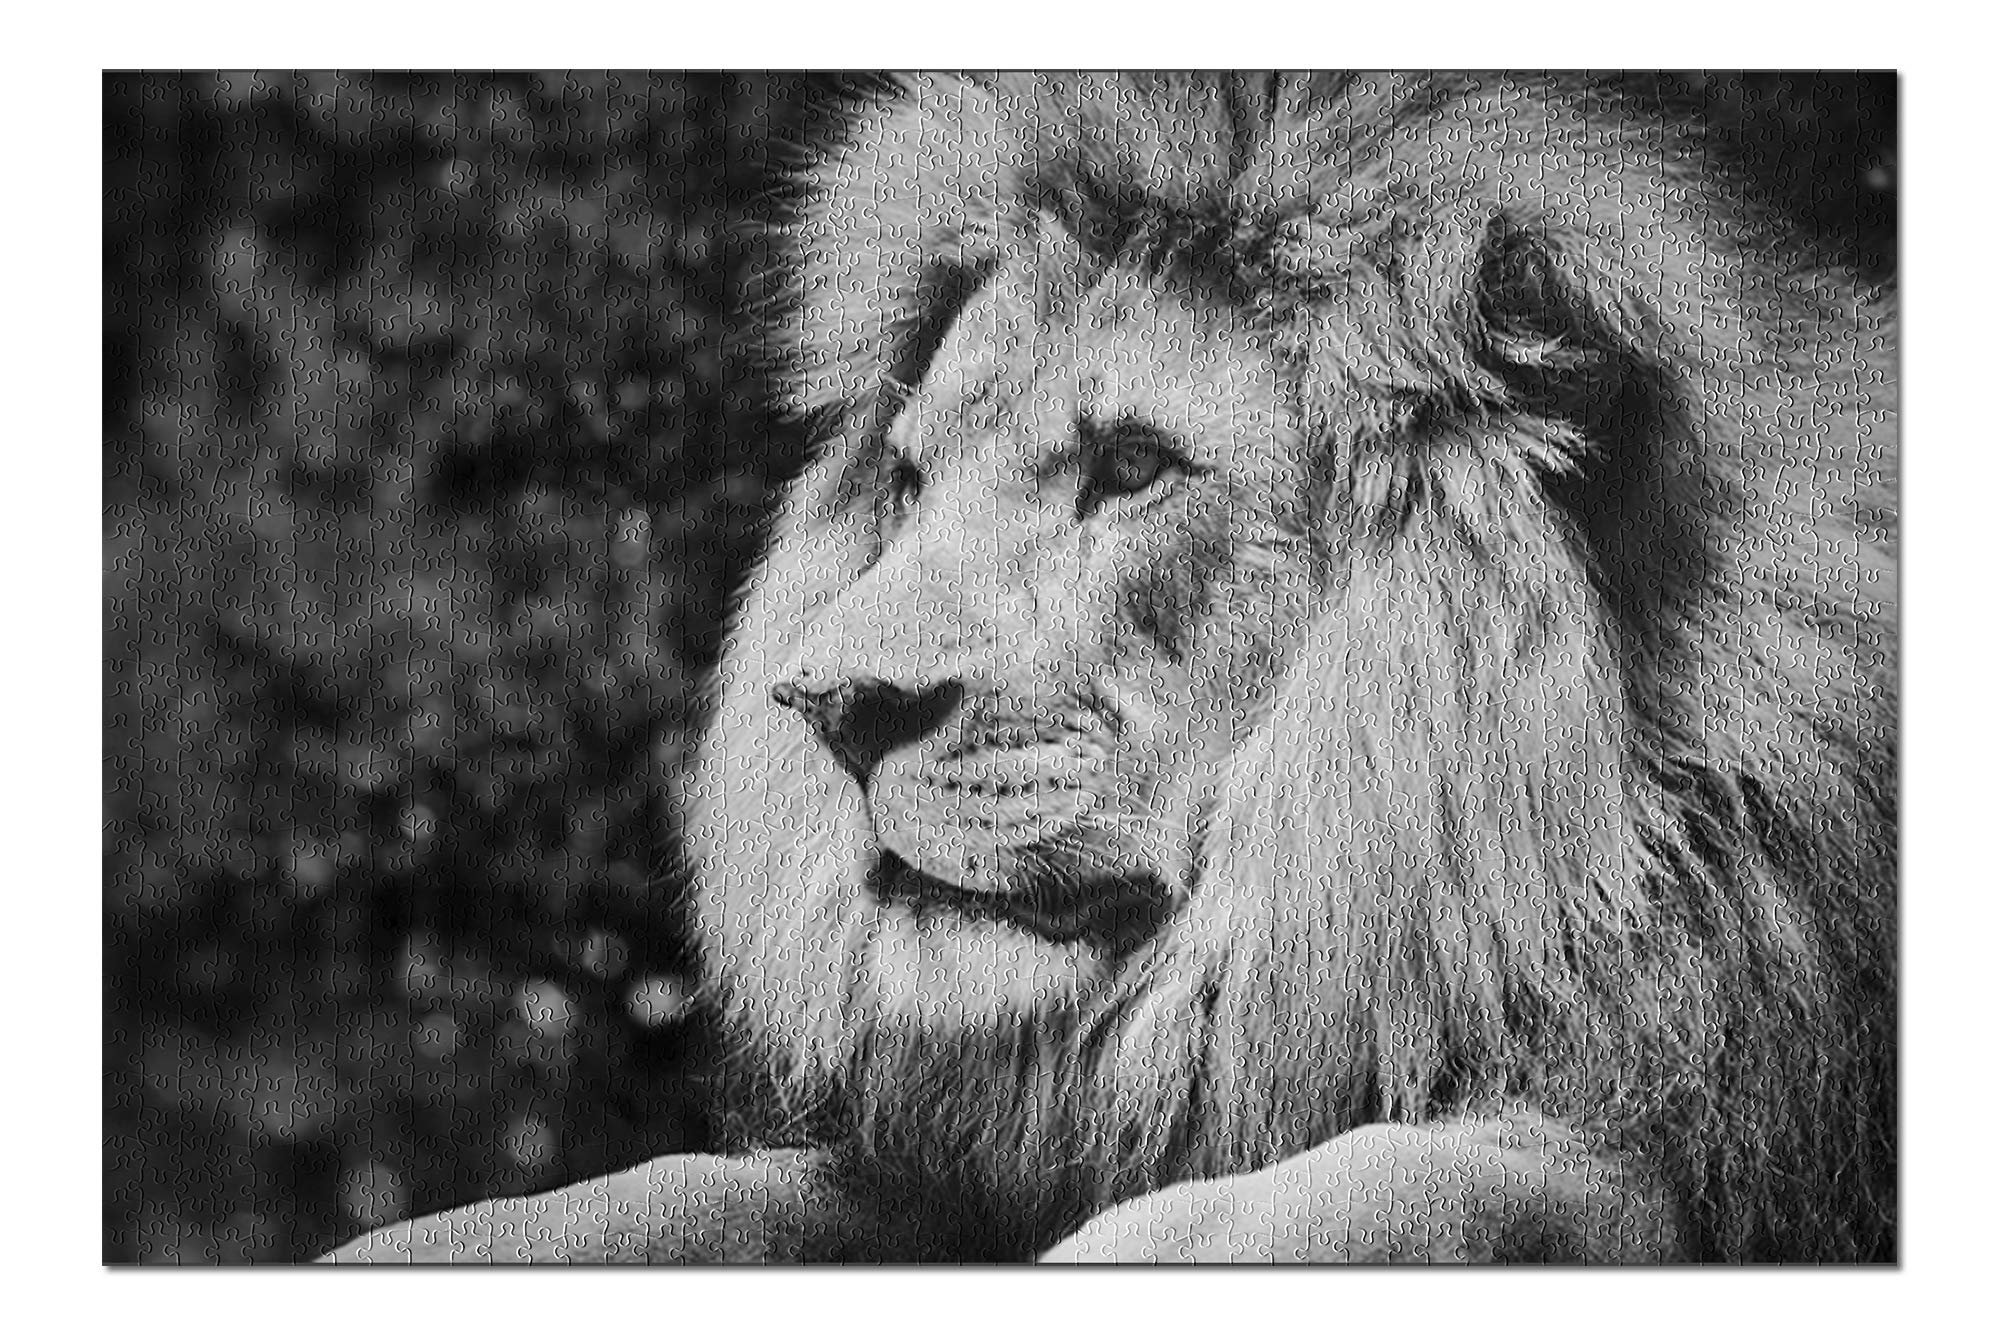 Male Lion in Profile Black and White Photograph A-90772 (Premium 1000 Piece Jigsaw Puzzle for Adults, 19x27, Made in USA!)